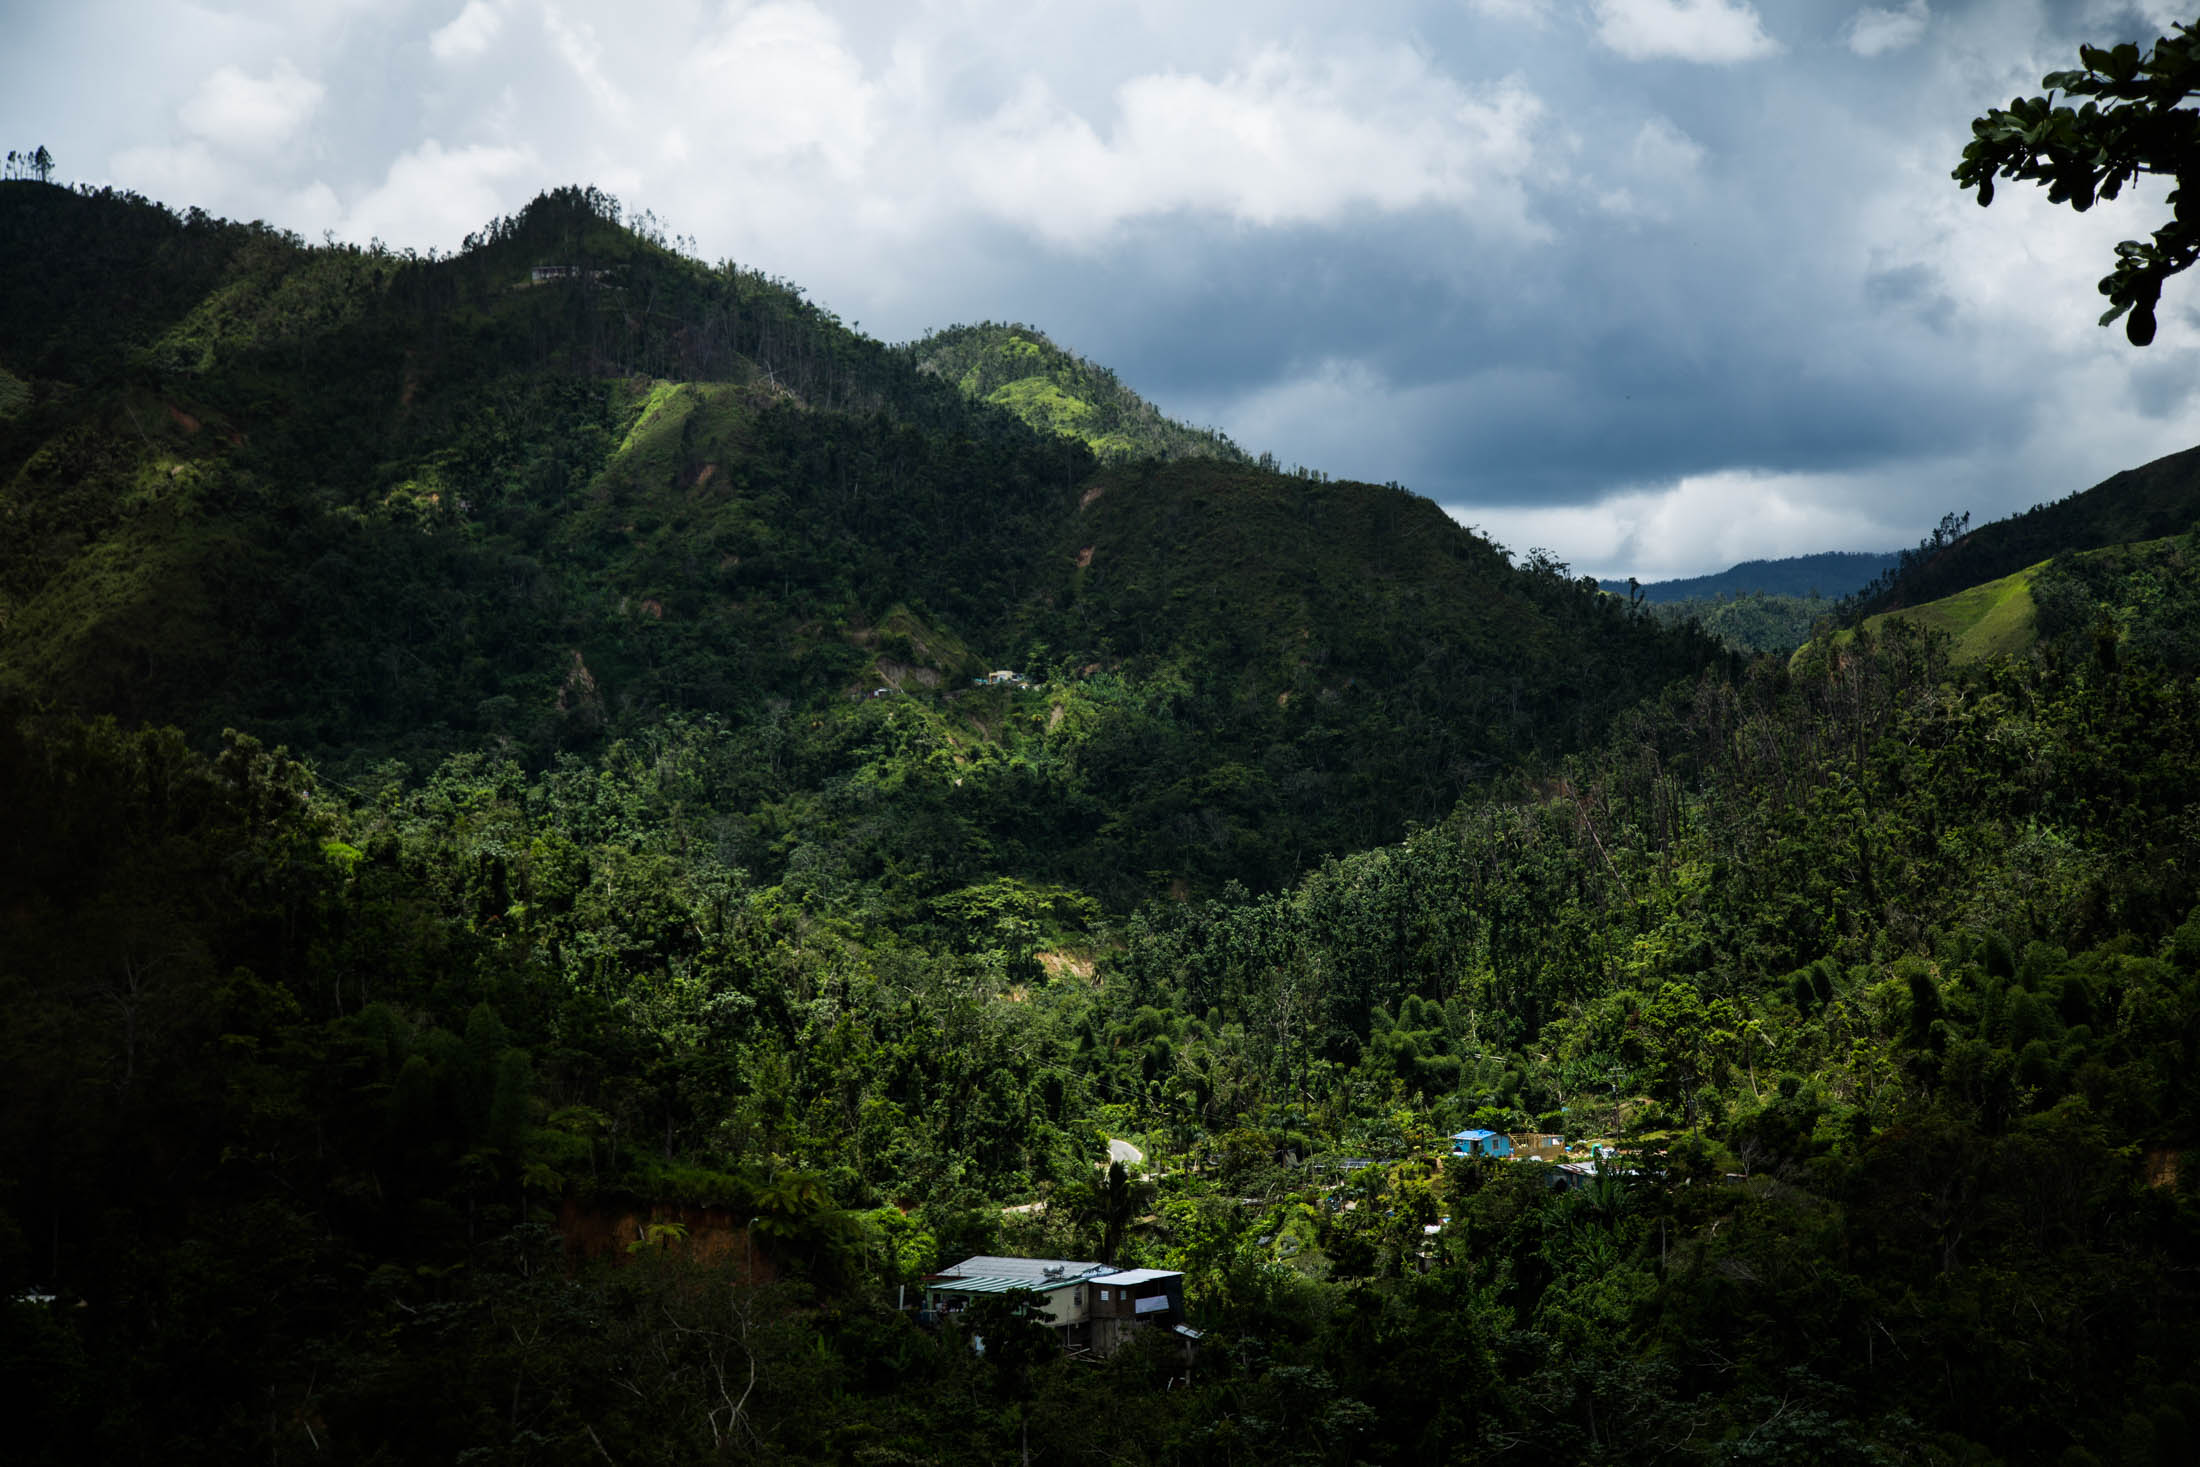 The mountainous community of Utuado, Puerto Rico, is pictured here on May 26, 2018. That's where a new solar-powered laundry room was installed for community use for two nearby communities that have been without power for over eight months. (Photo by Erika P.  Rodriguez for Direct Relief)